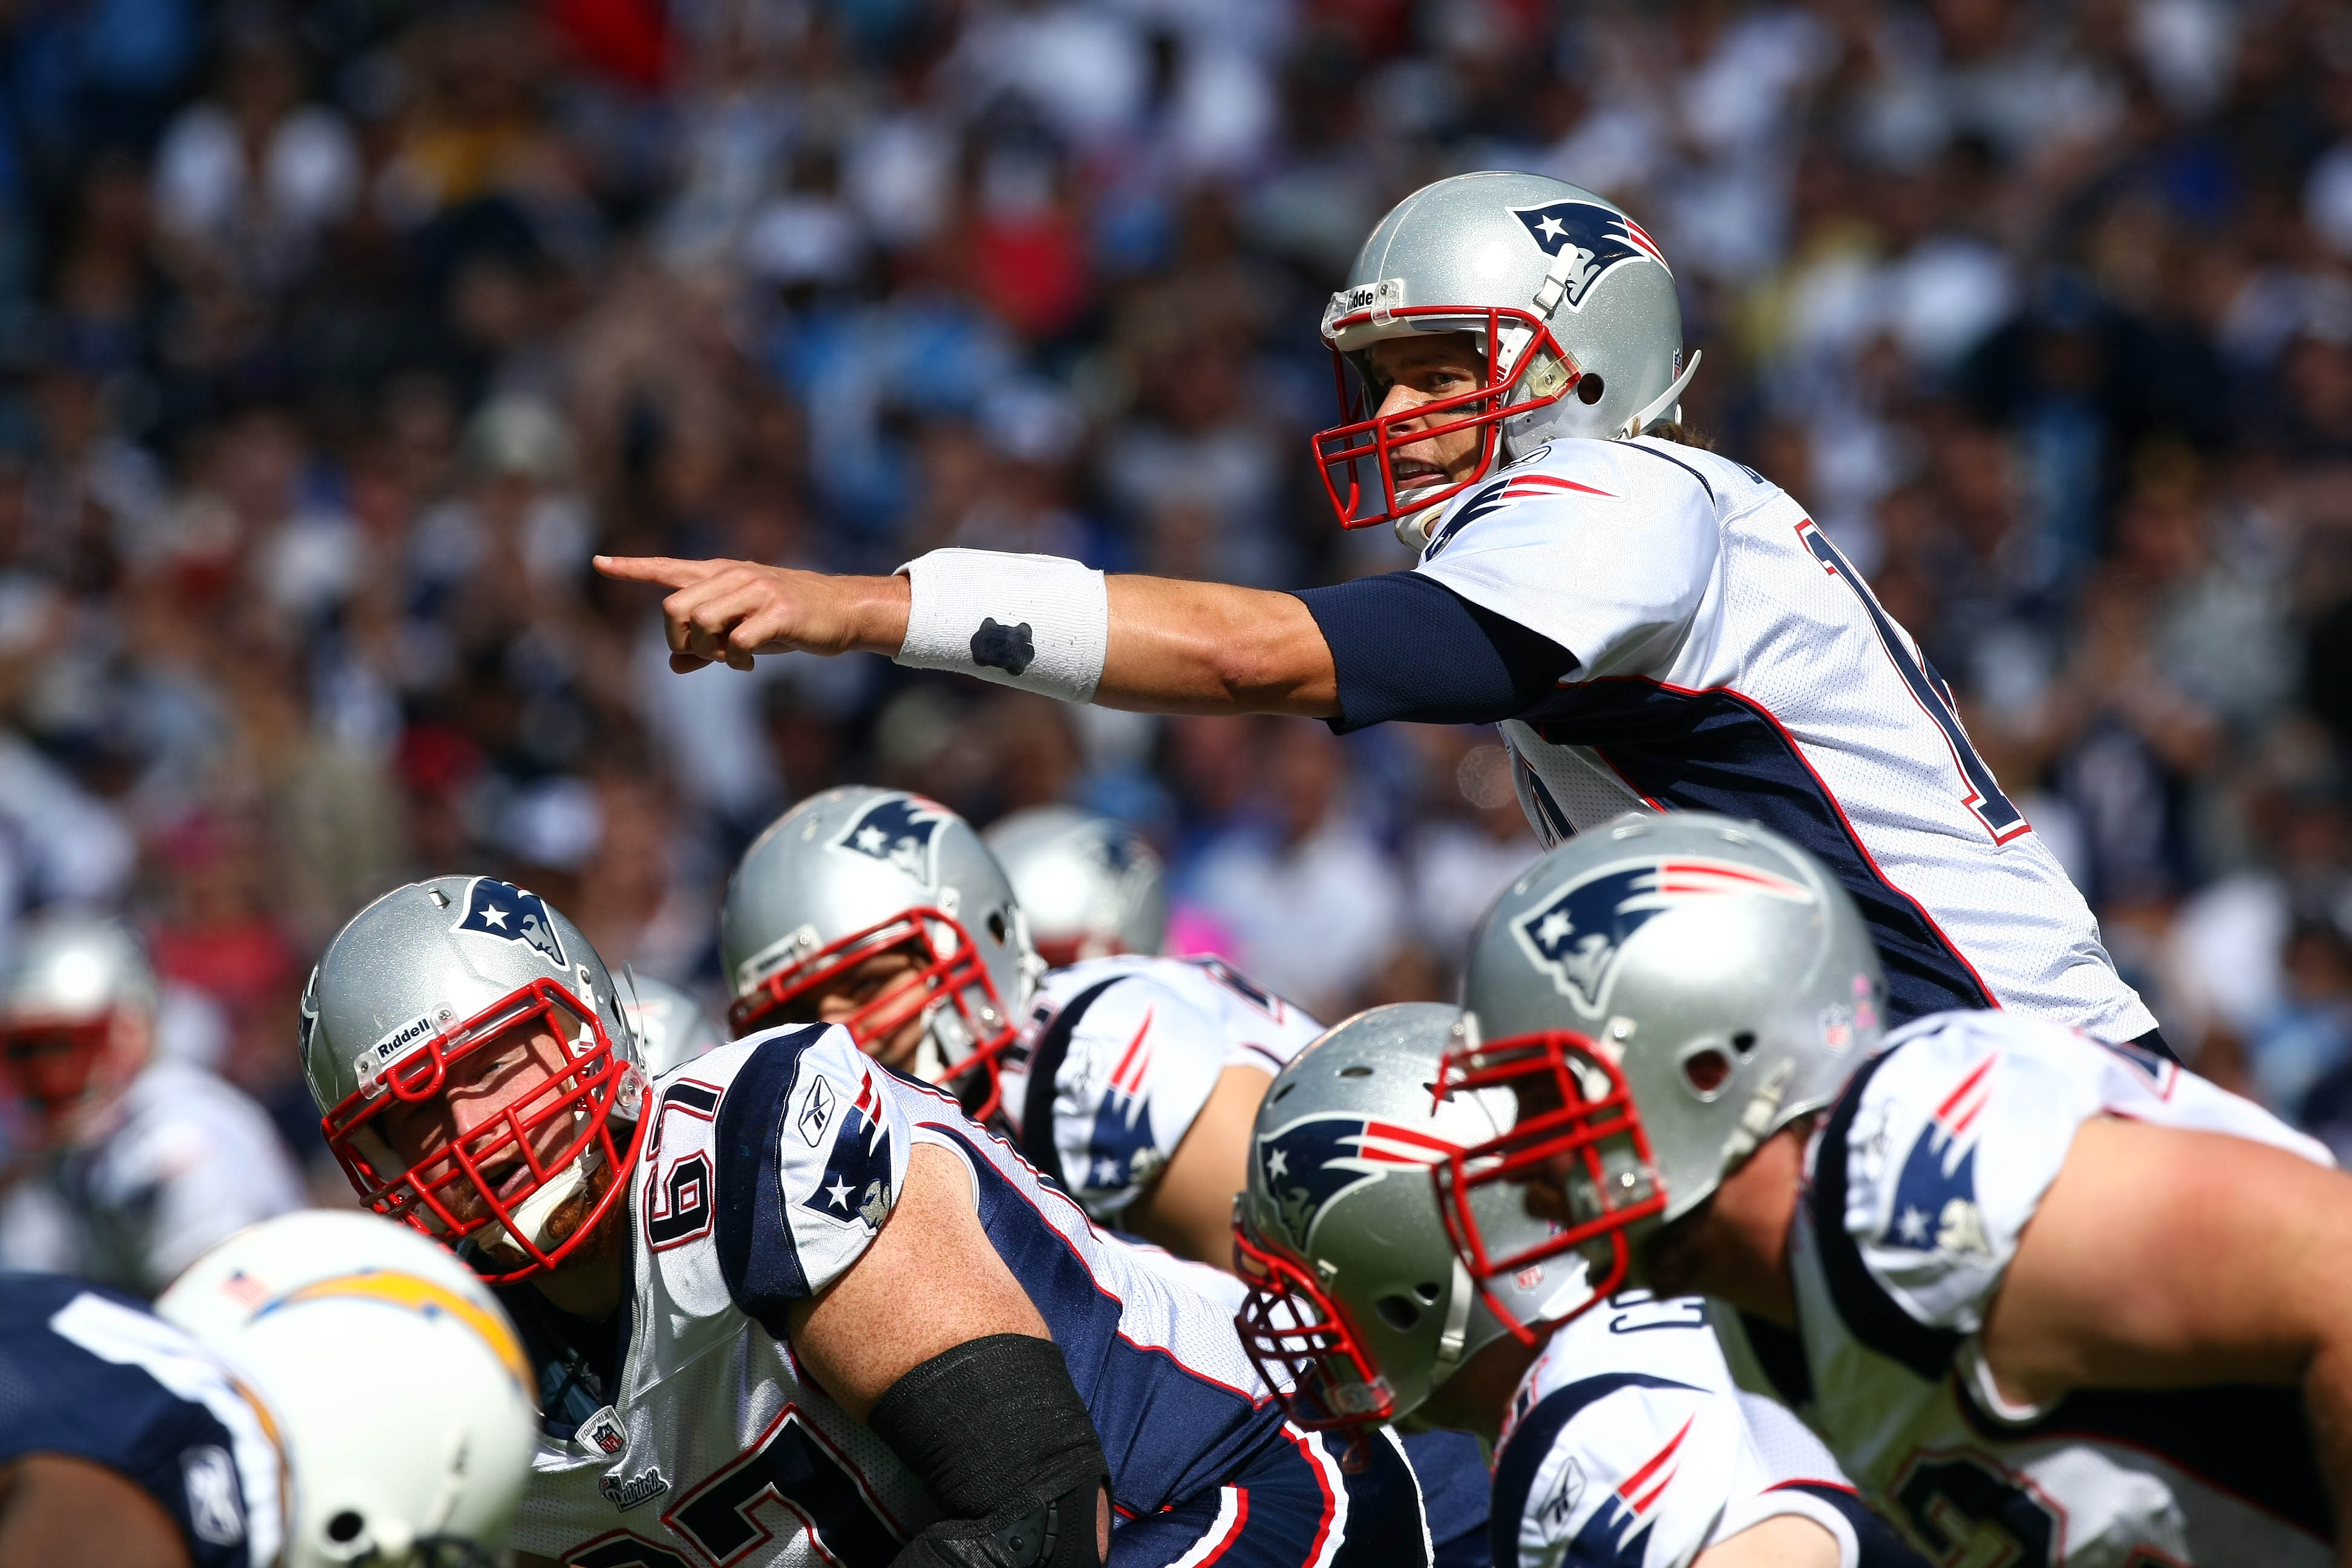 SAN DIEGO - OCTOBER 24:  Quarterback Tom Brady #12 of the New England points at the defense at the line of scrimmage against the San Diego Chargers during their NFL game on October 24, 2010 at Qualcomm Stadium in San Diego, California. (Photo by Donald Mi